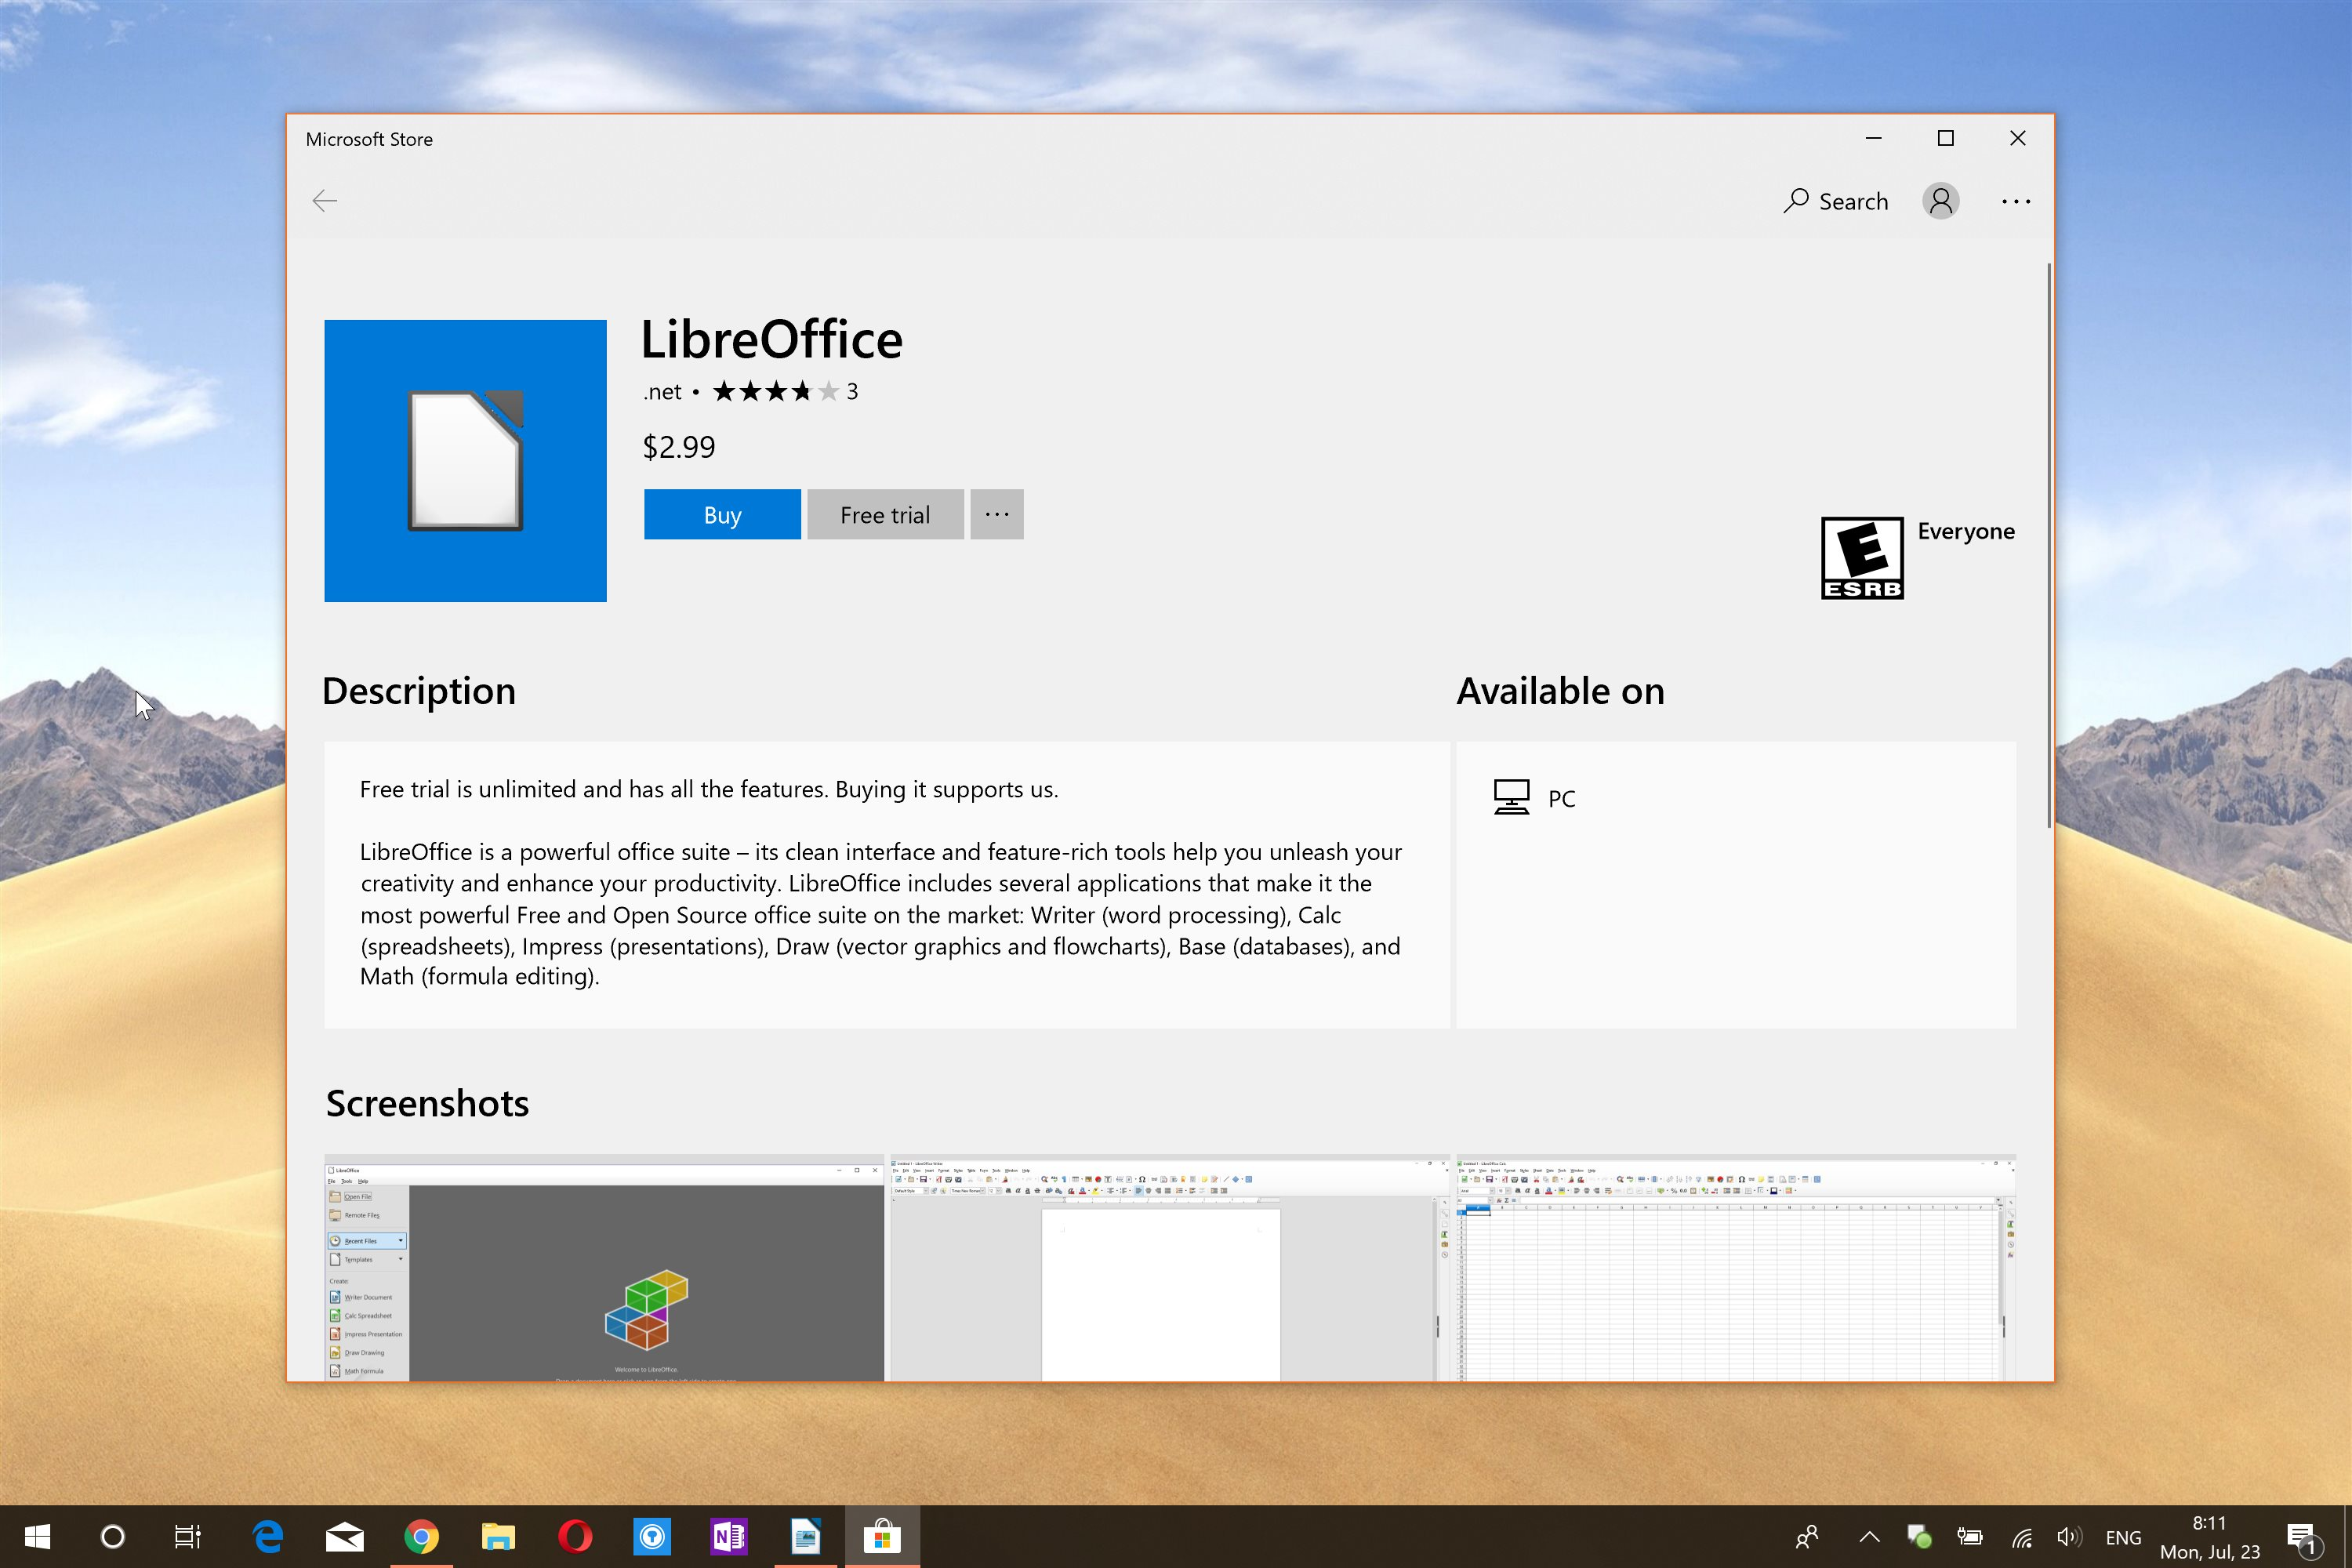 microsoft store for windows 10